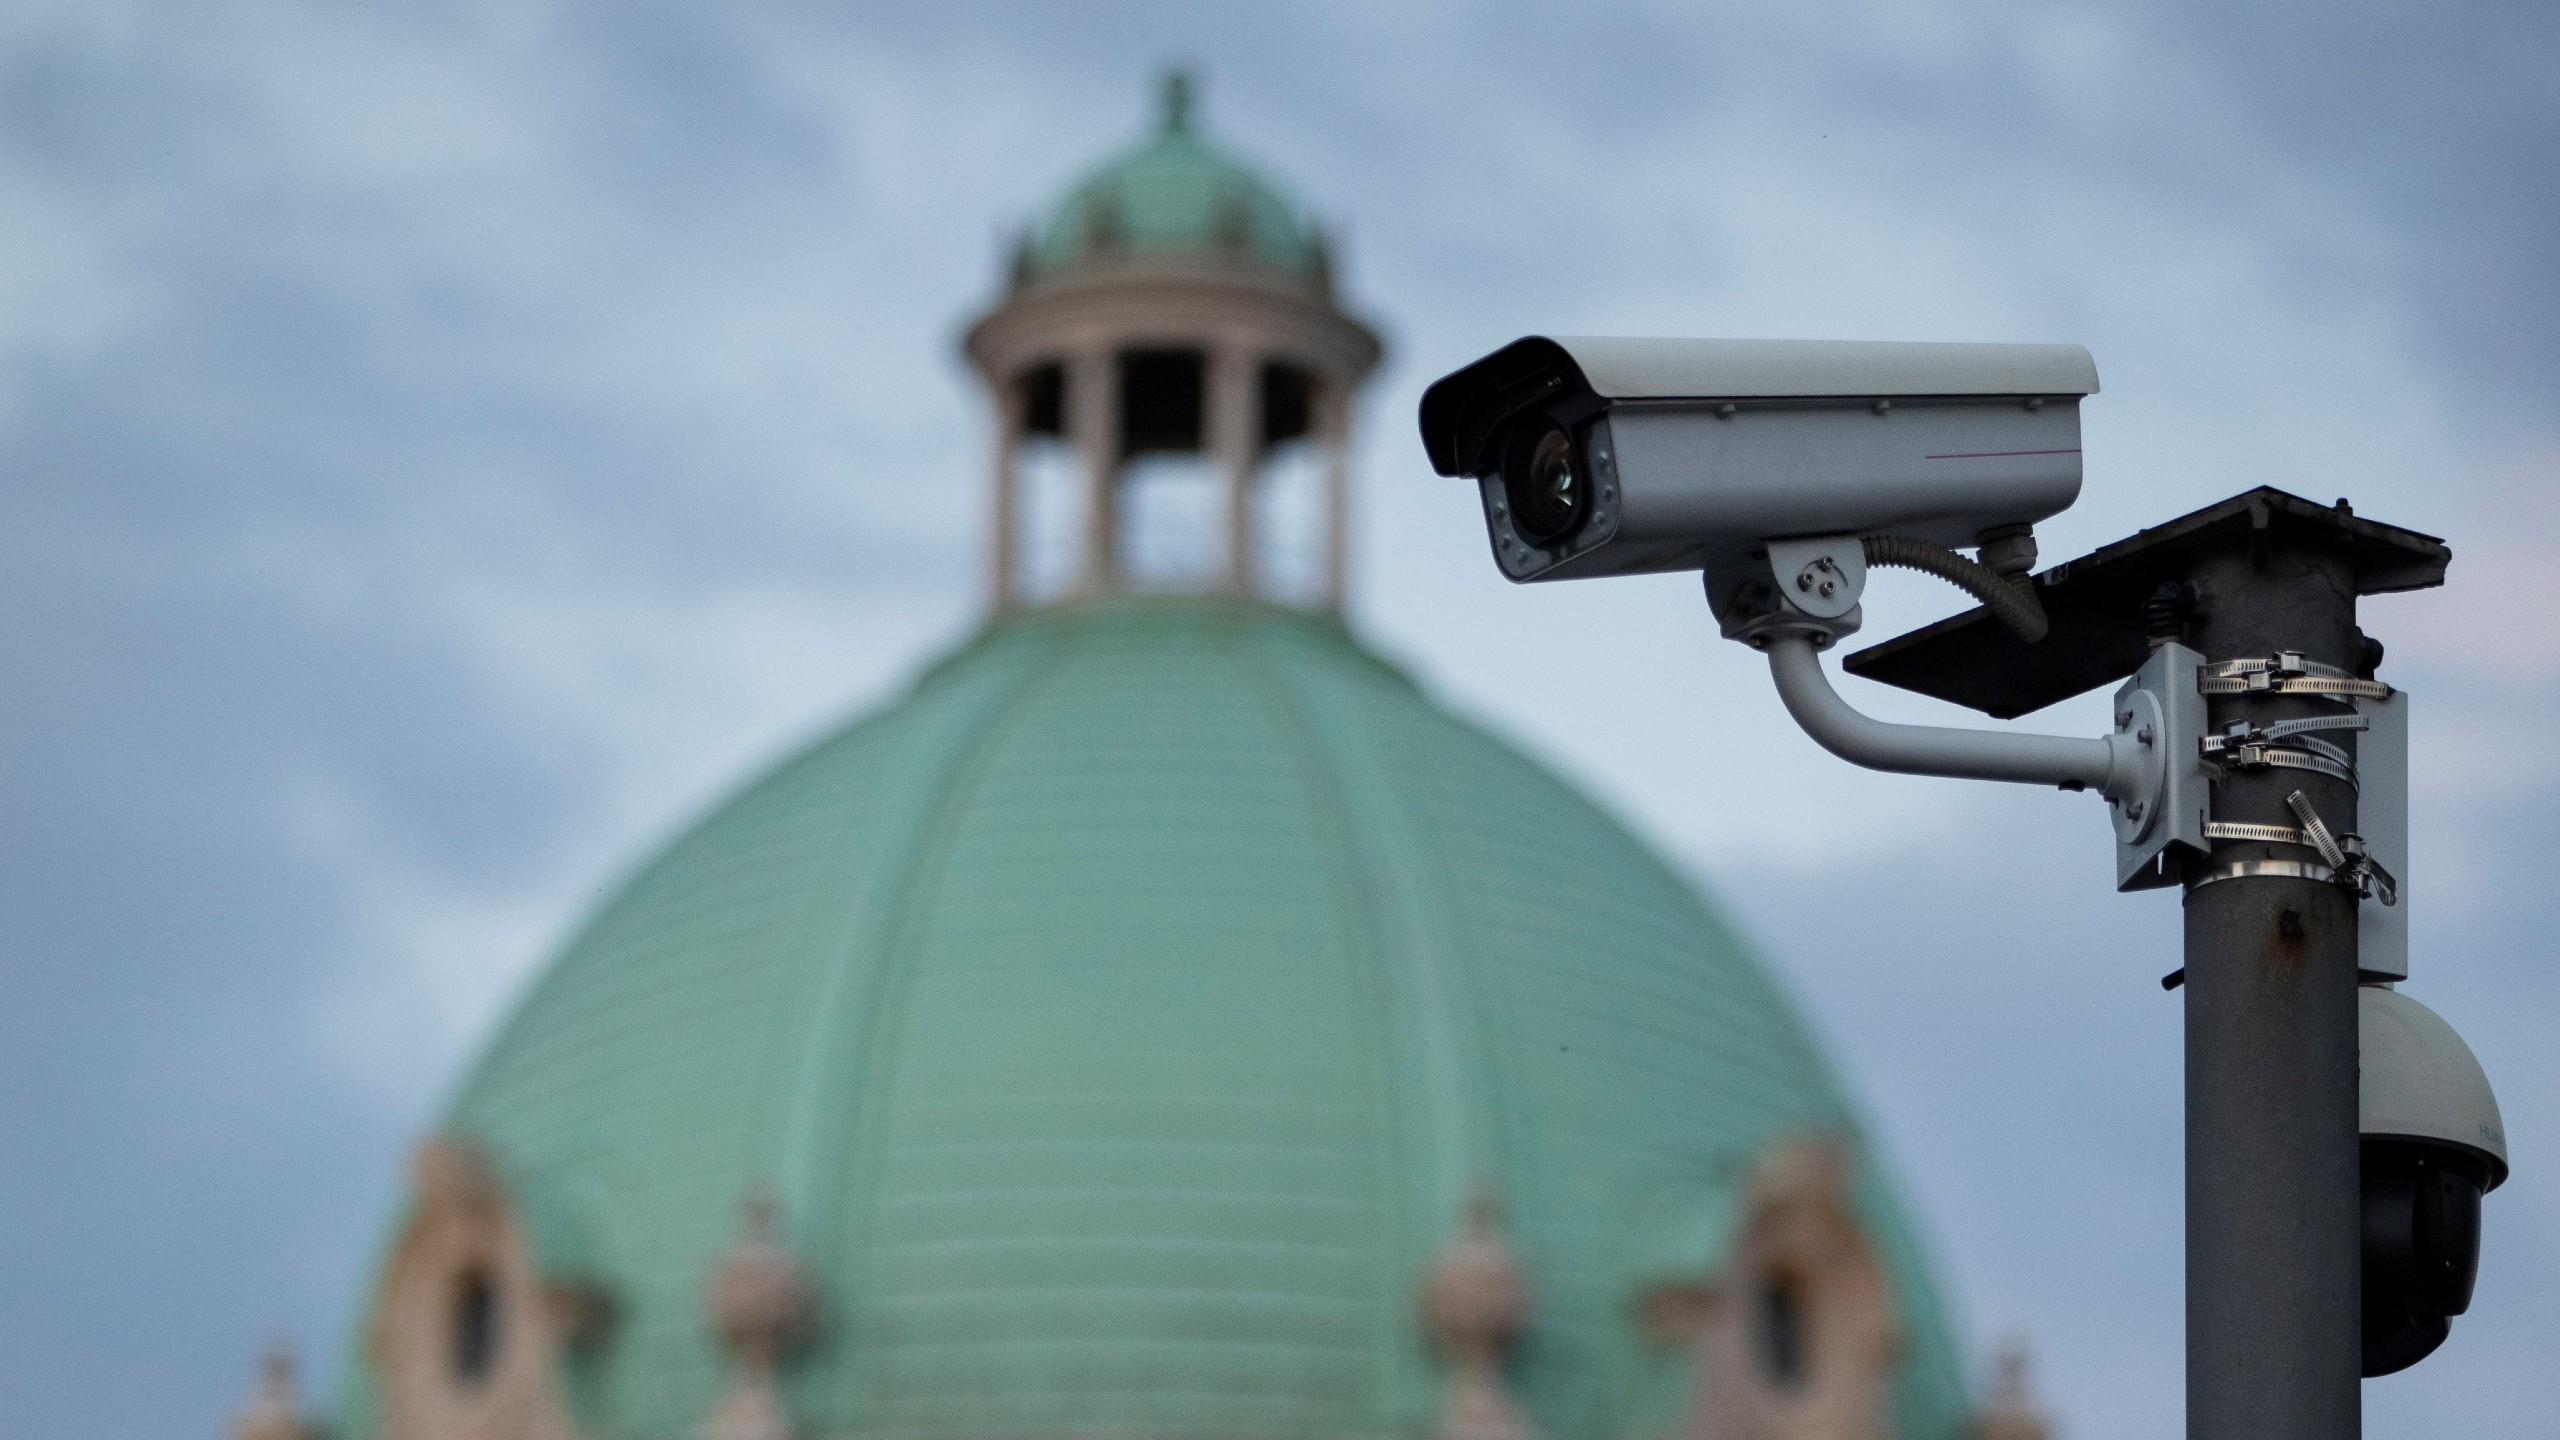 Photo: Surveillance camera is seen in front of the Serbian Parliament building in Belgrade, Serbia, August 12, 2020. Picture taken August 12, 2020. Credit: REUTERS/Marko Djurica